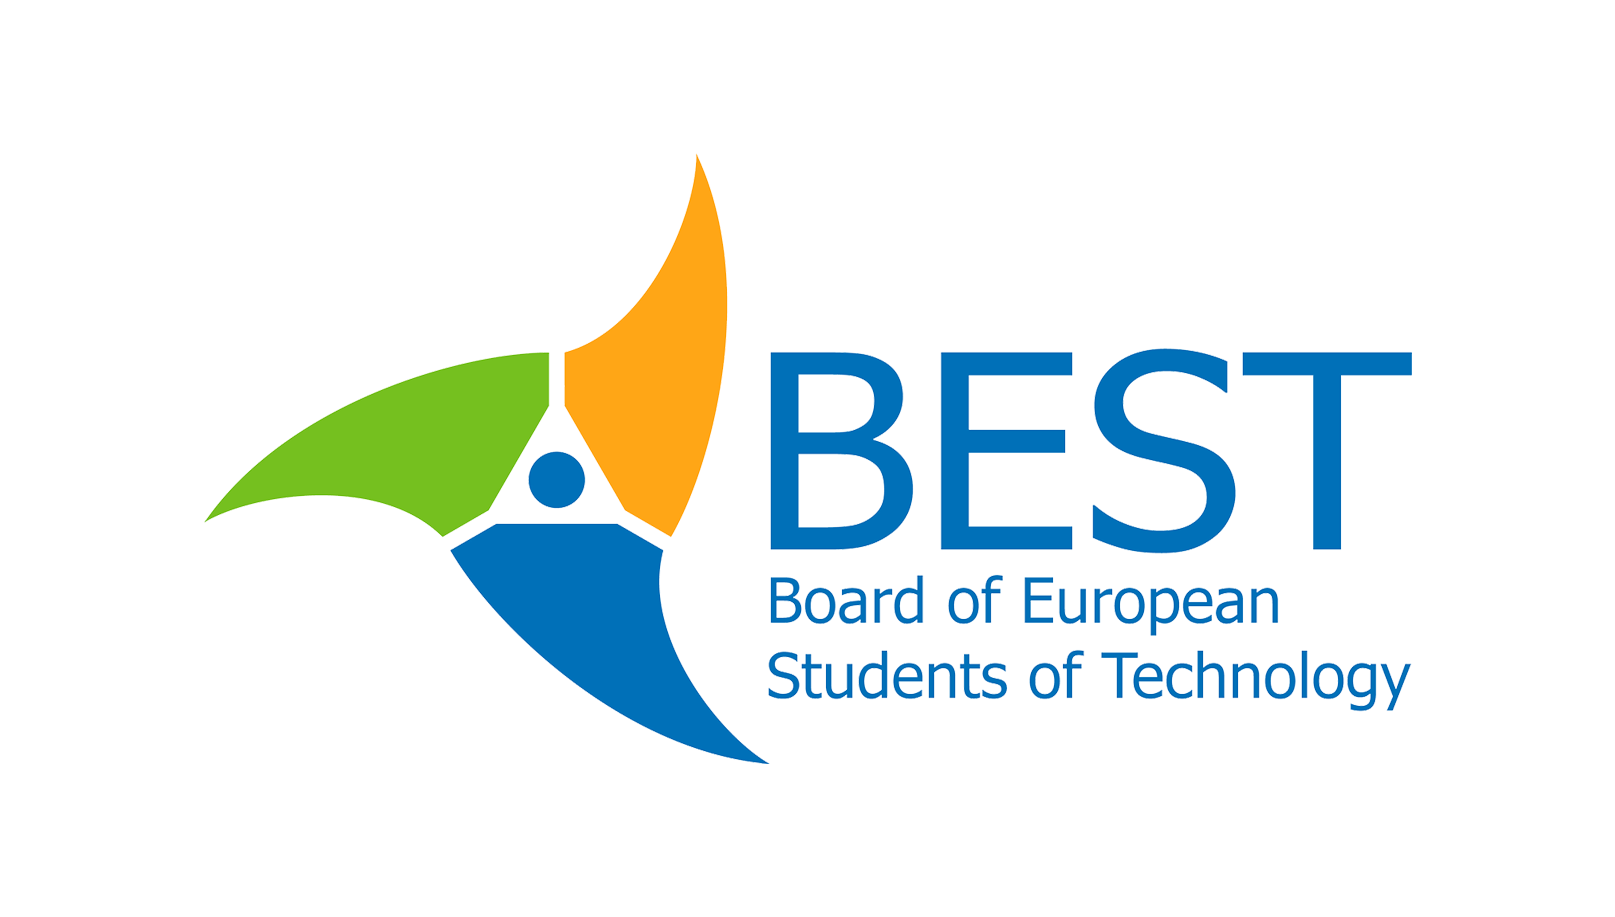 Board of European Students of Technology